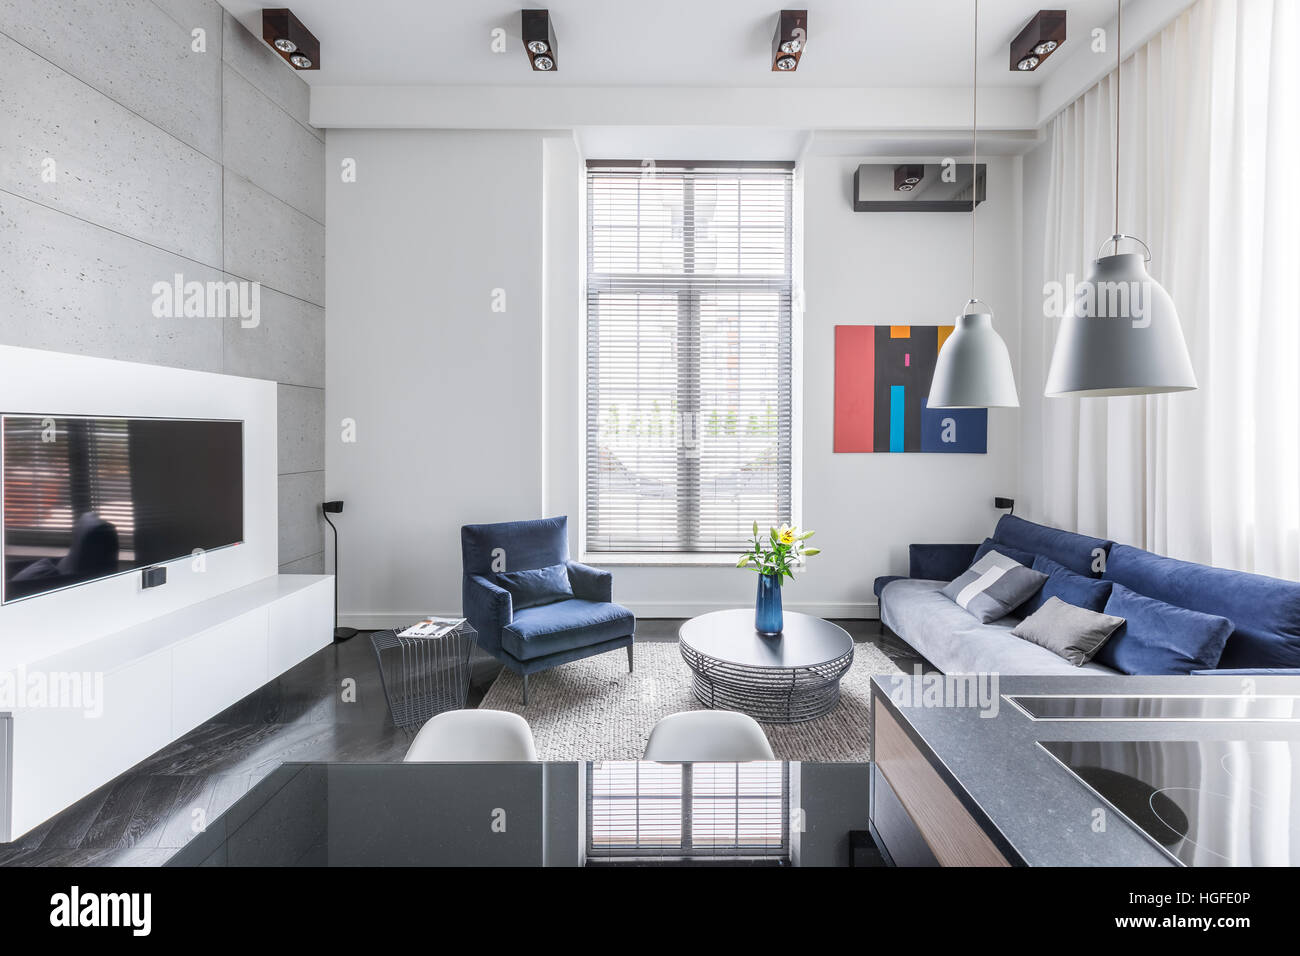 White tv living room with blue upholstered furniture Stock Photo ...